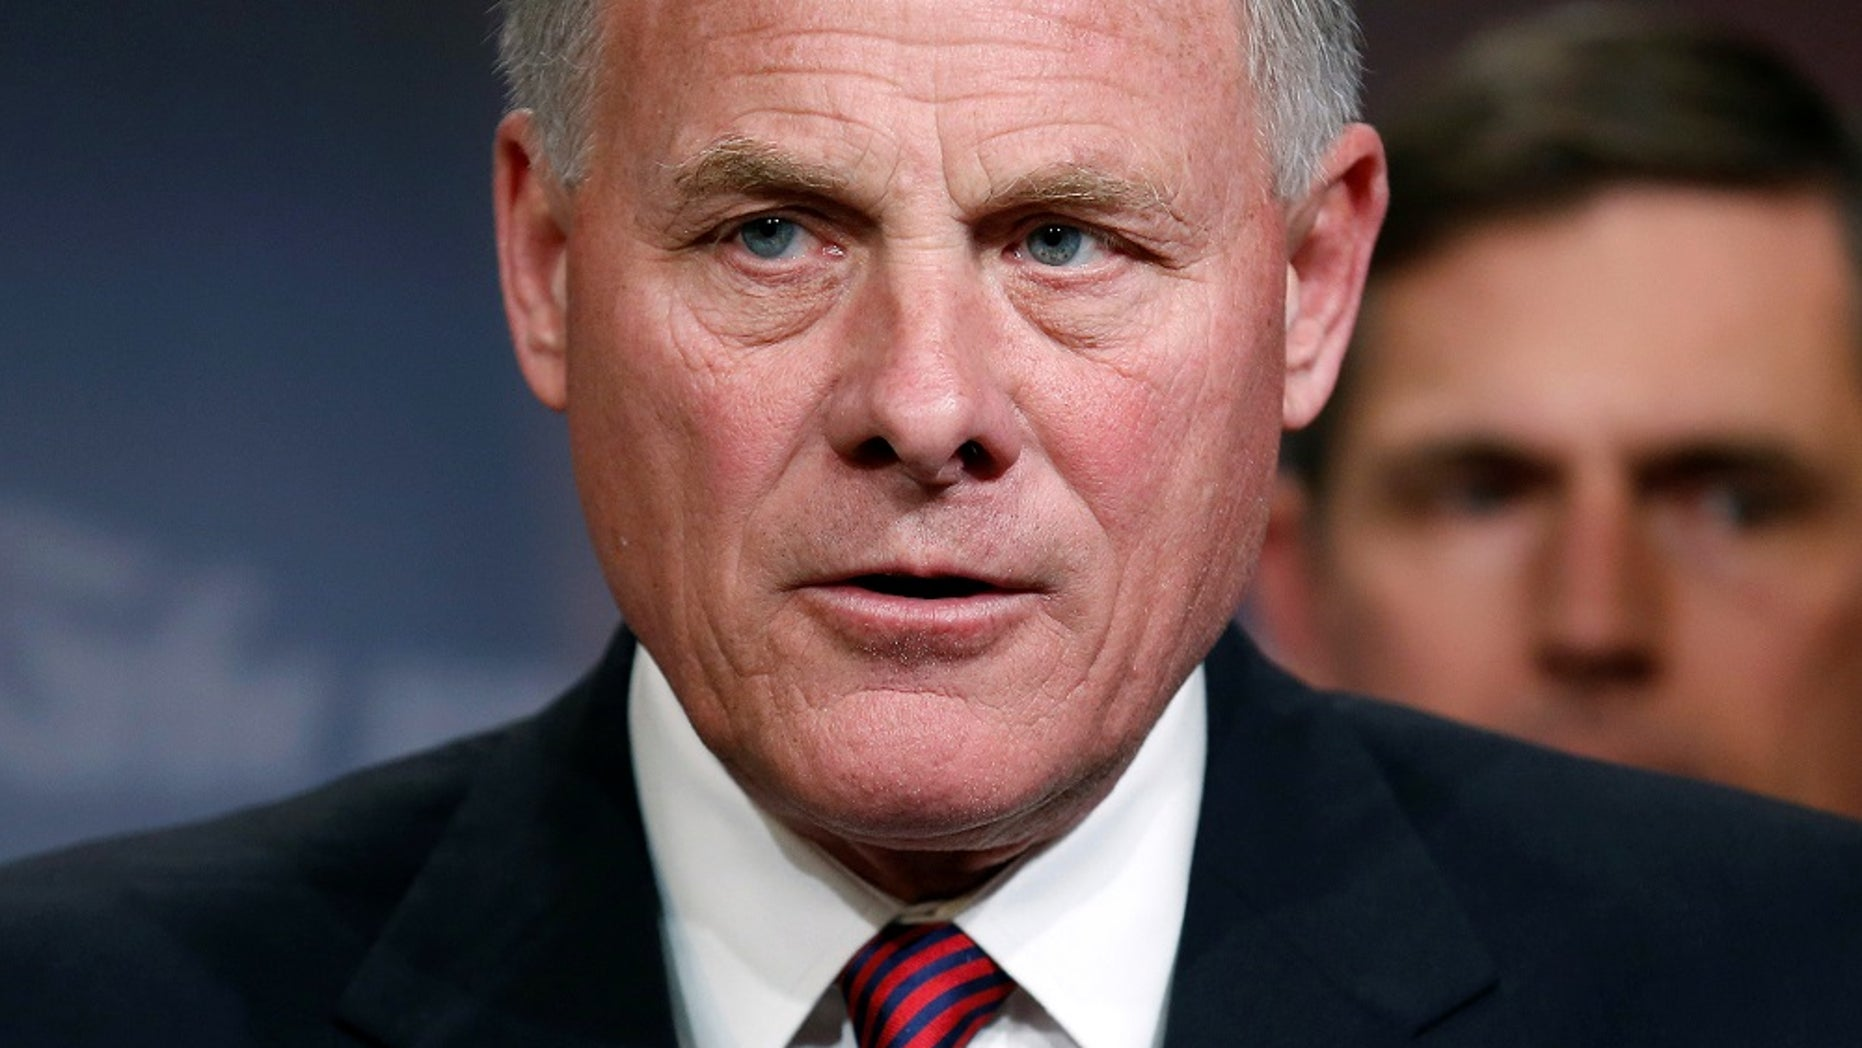 U.S. Sen. Richard Burr, R-N.C., chairman of the Senate Intelligence Committee, speaks to reporters about the panel's findings on threats to U.S. election infrastructure, in March 2018.